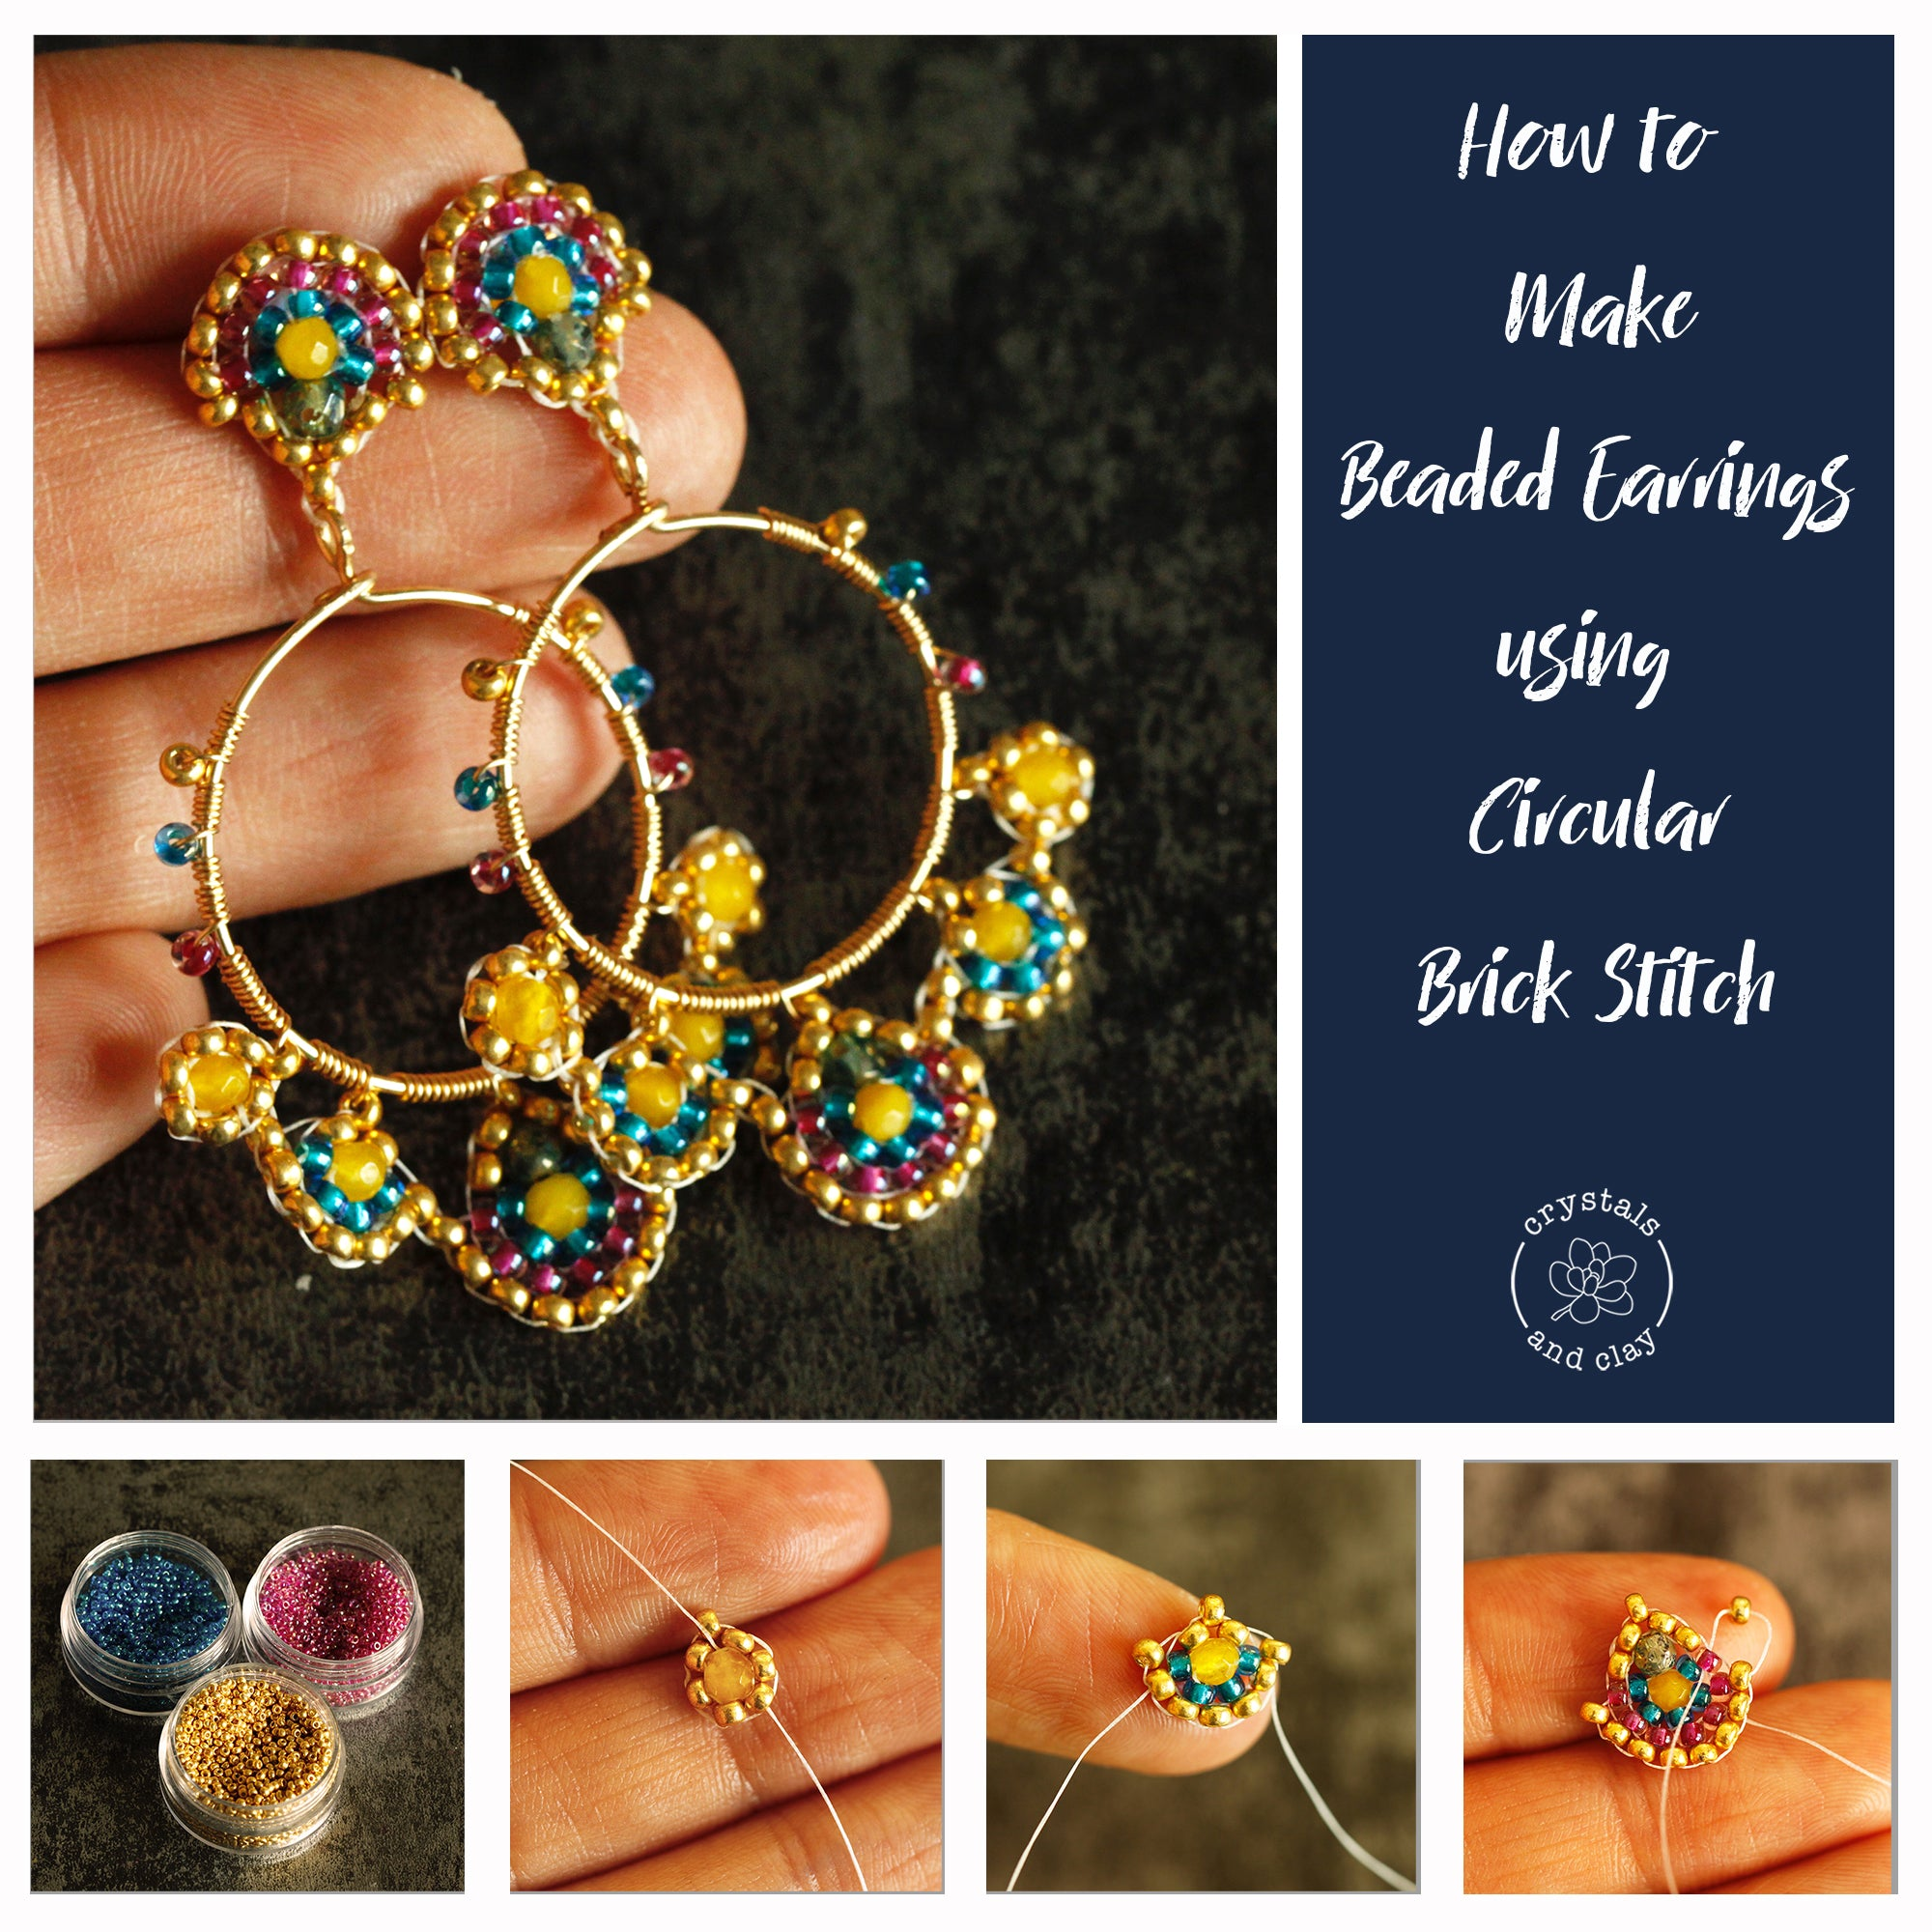 how to make beaded earring using circular brick stitch